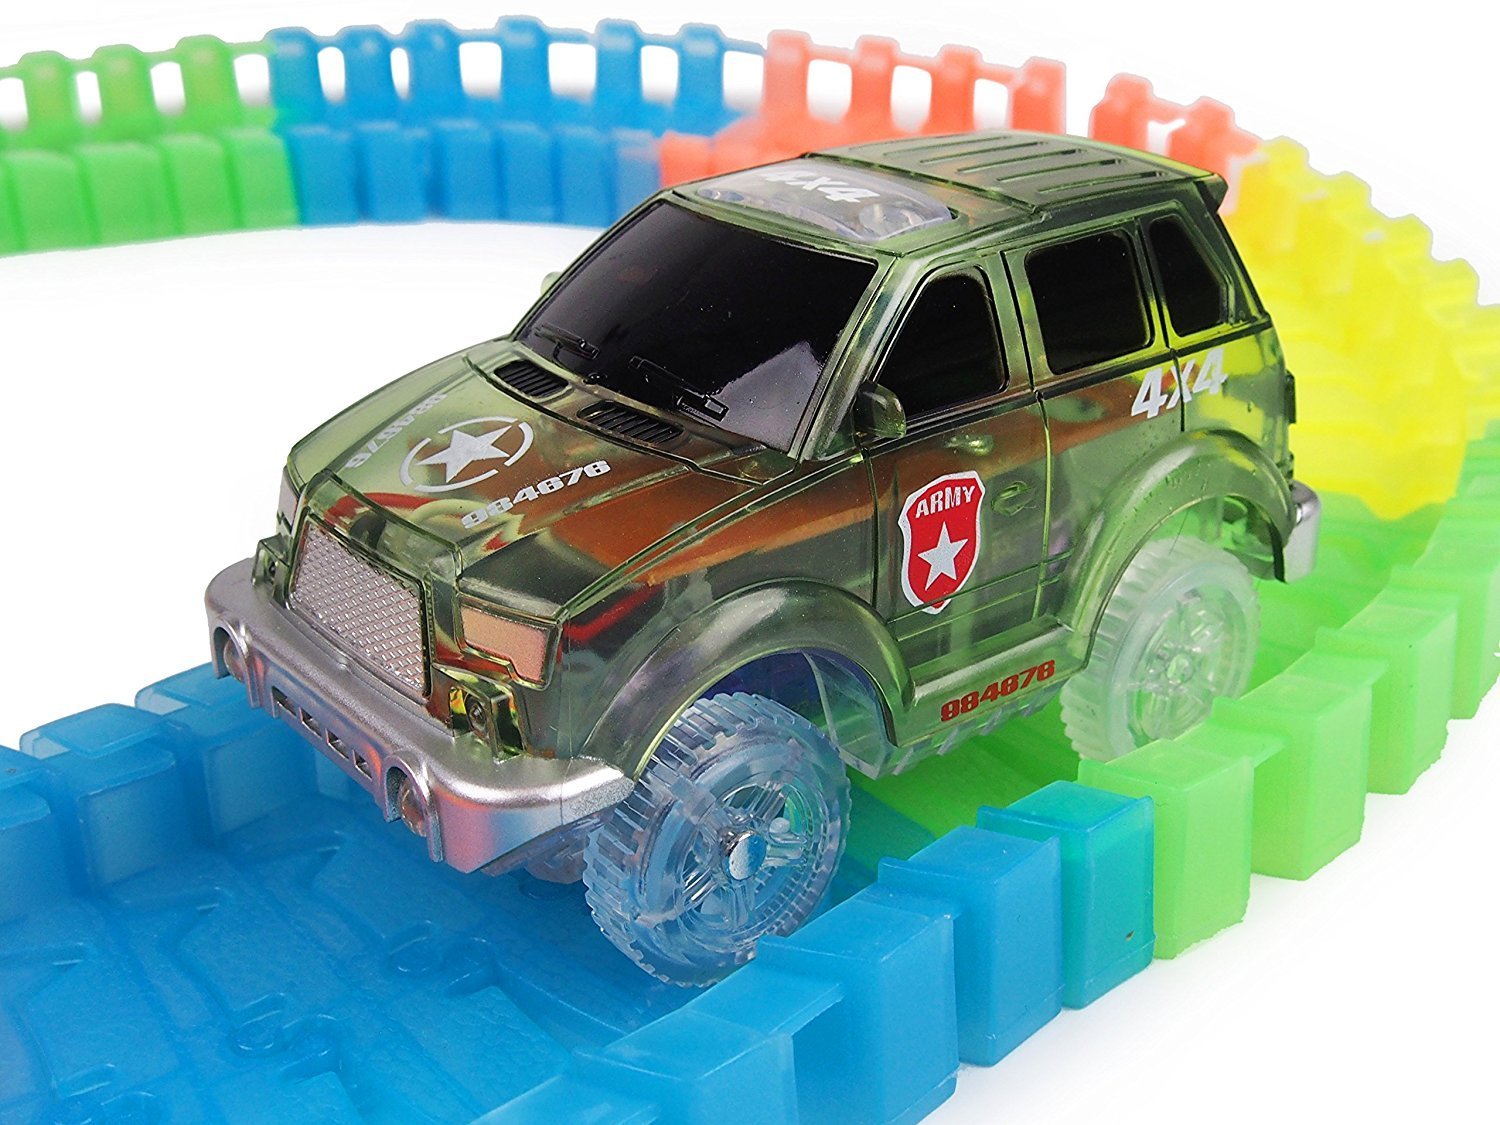 Track Car 3 Pack, Green Military Jeep, Blue Police and School Bus Car, with 5 LED Lights, Compatible with Most Tracks Including Magic Tracks, Neo Twister Tracks, Boys and Girls by HapiSimi (Image #8)